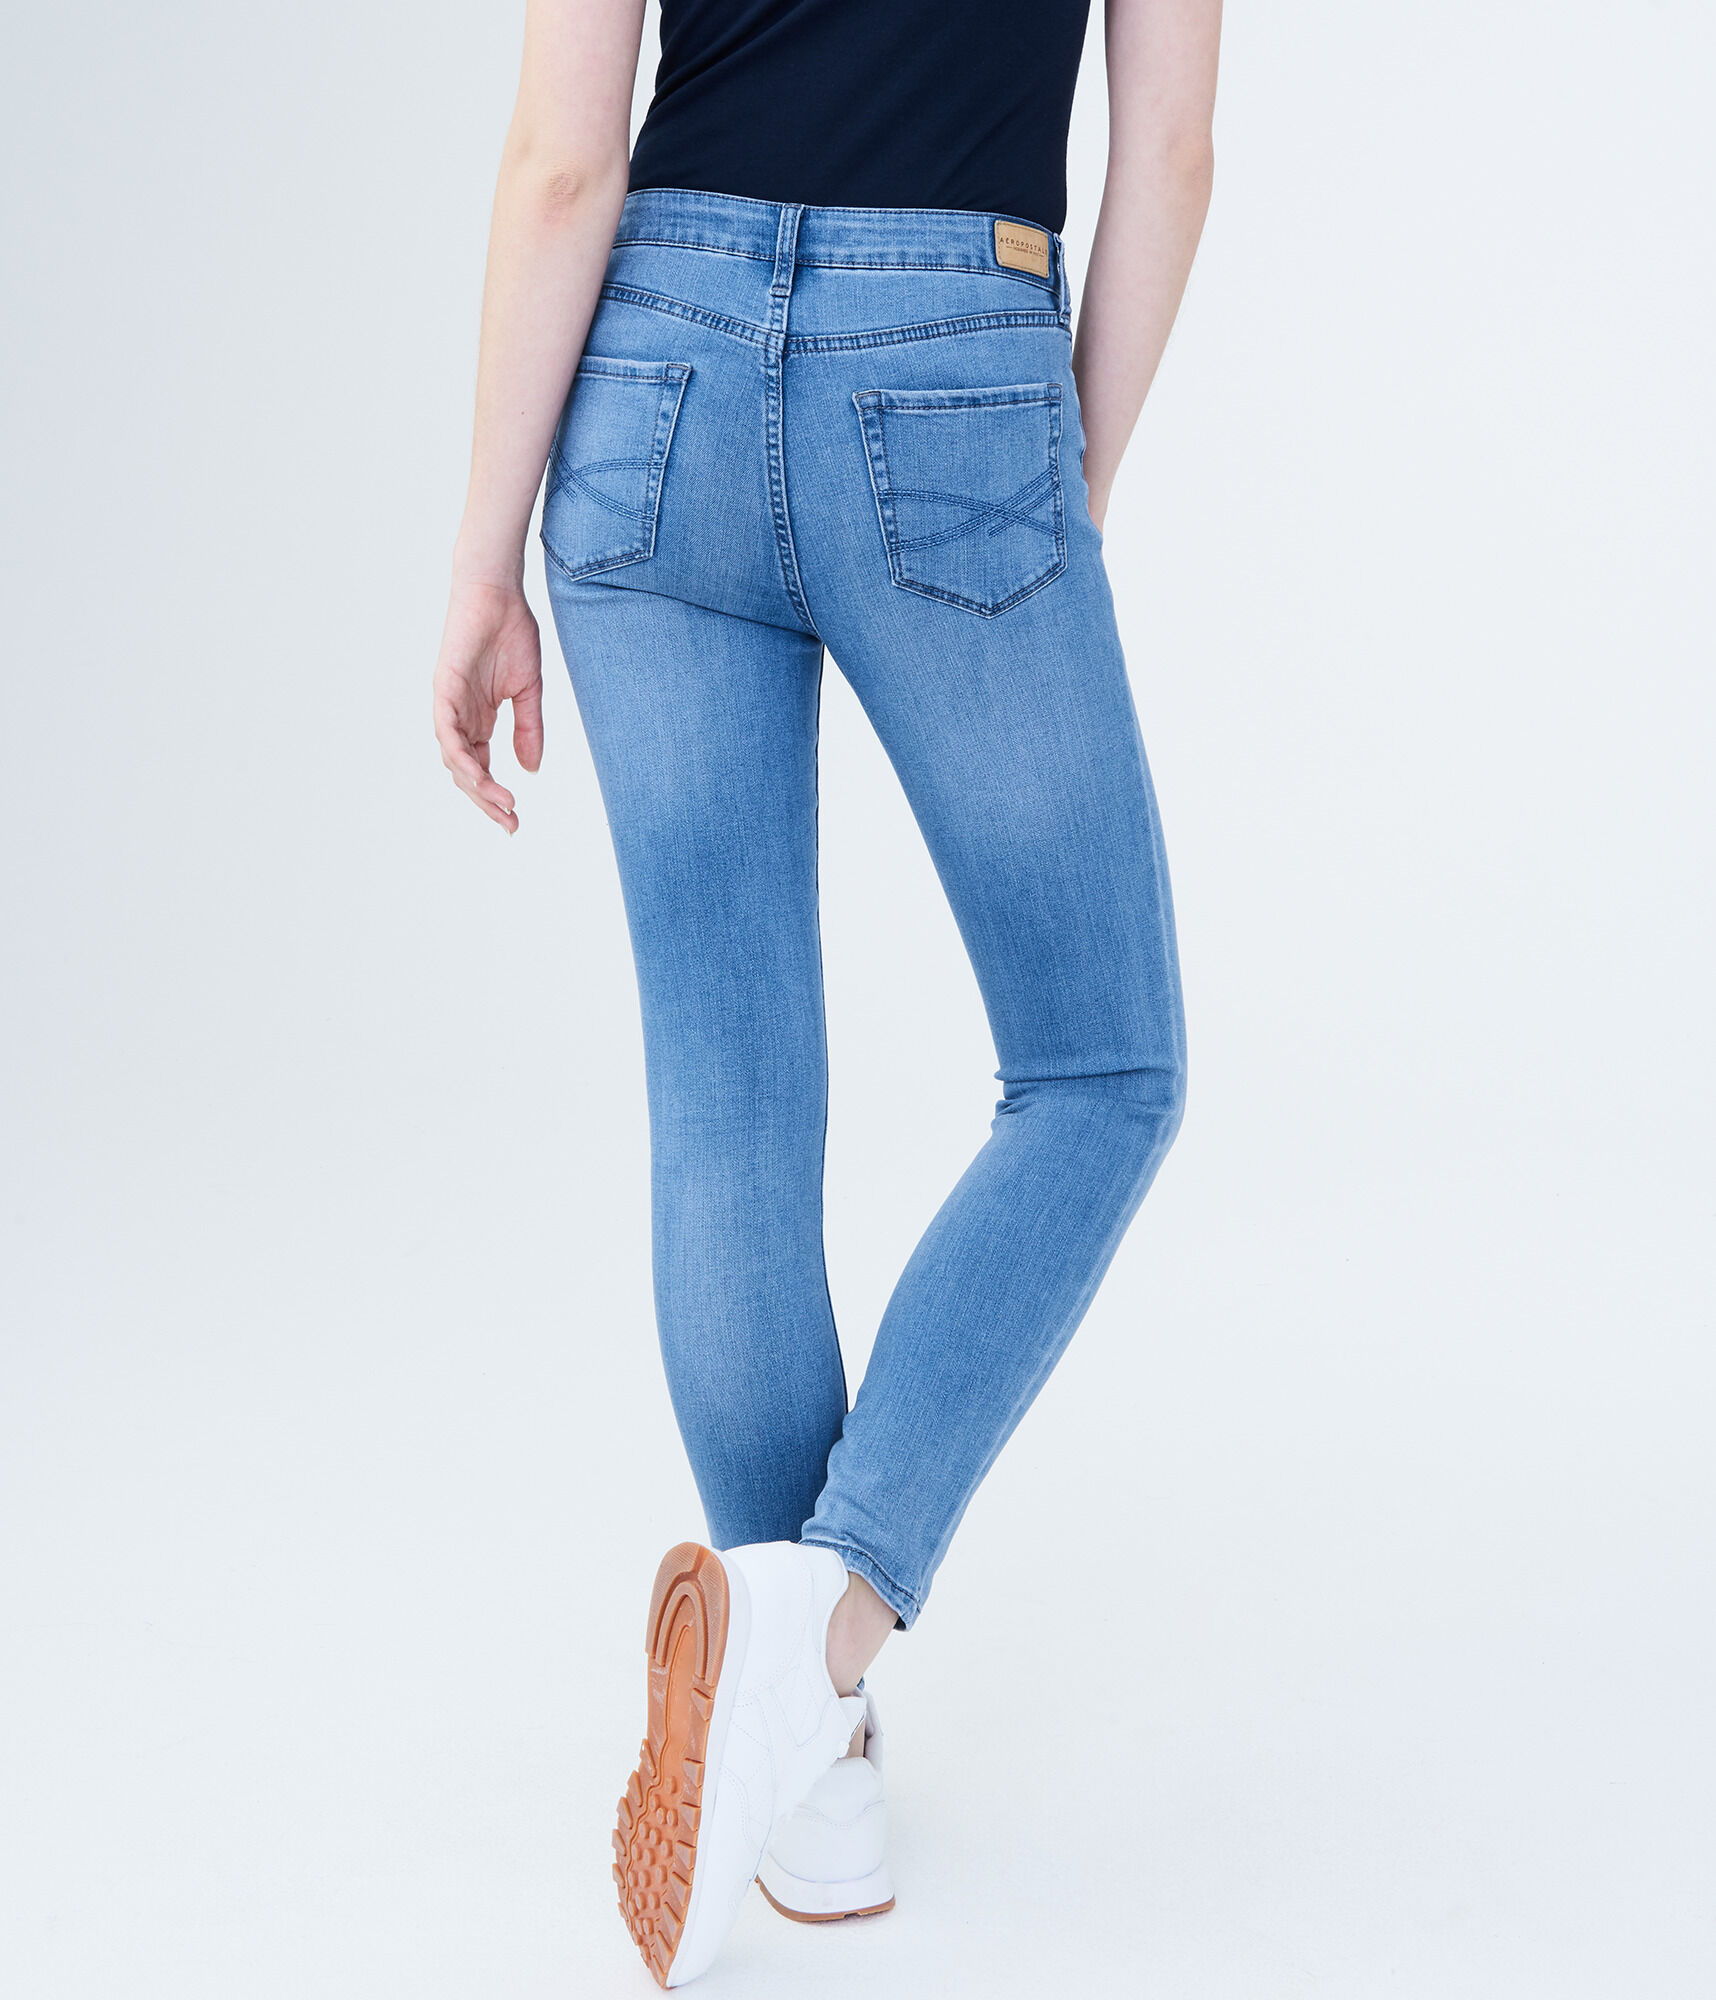 5ccfcdf0136 Seriously Stretchy High-Waisted Jegging